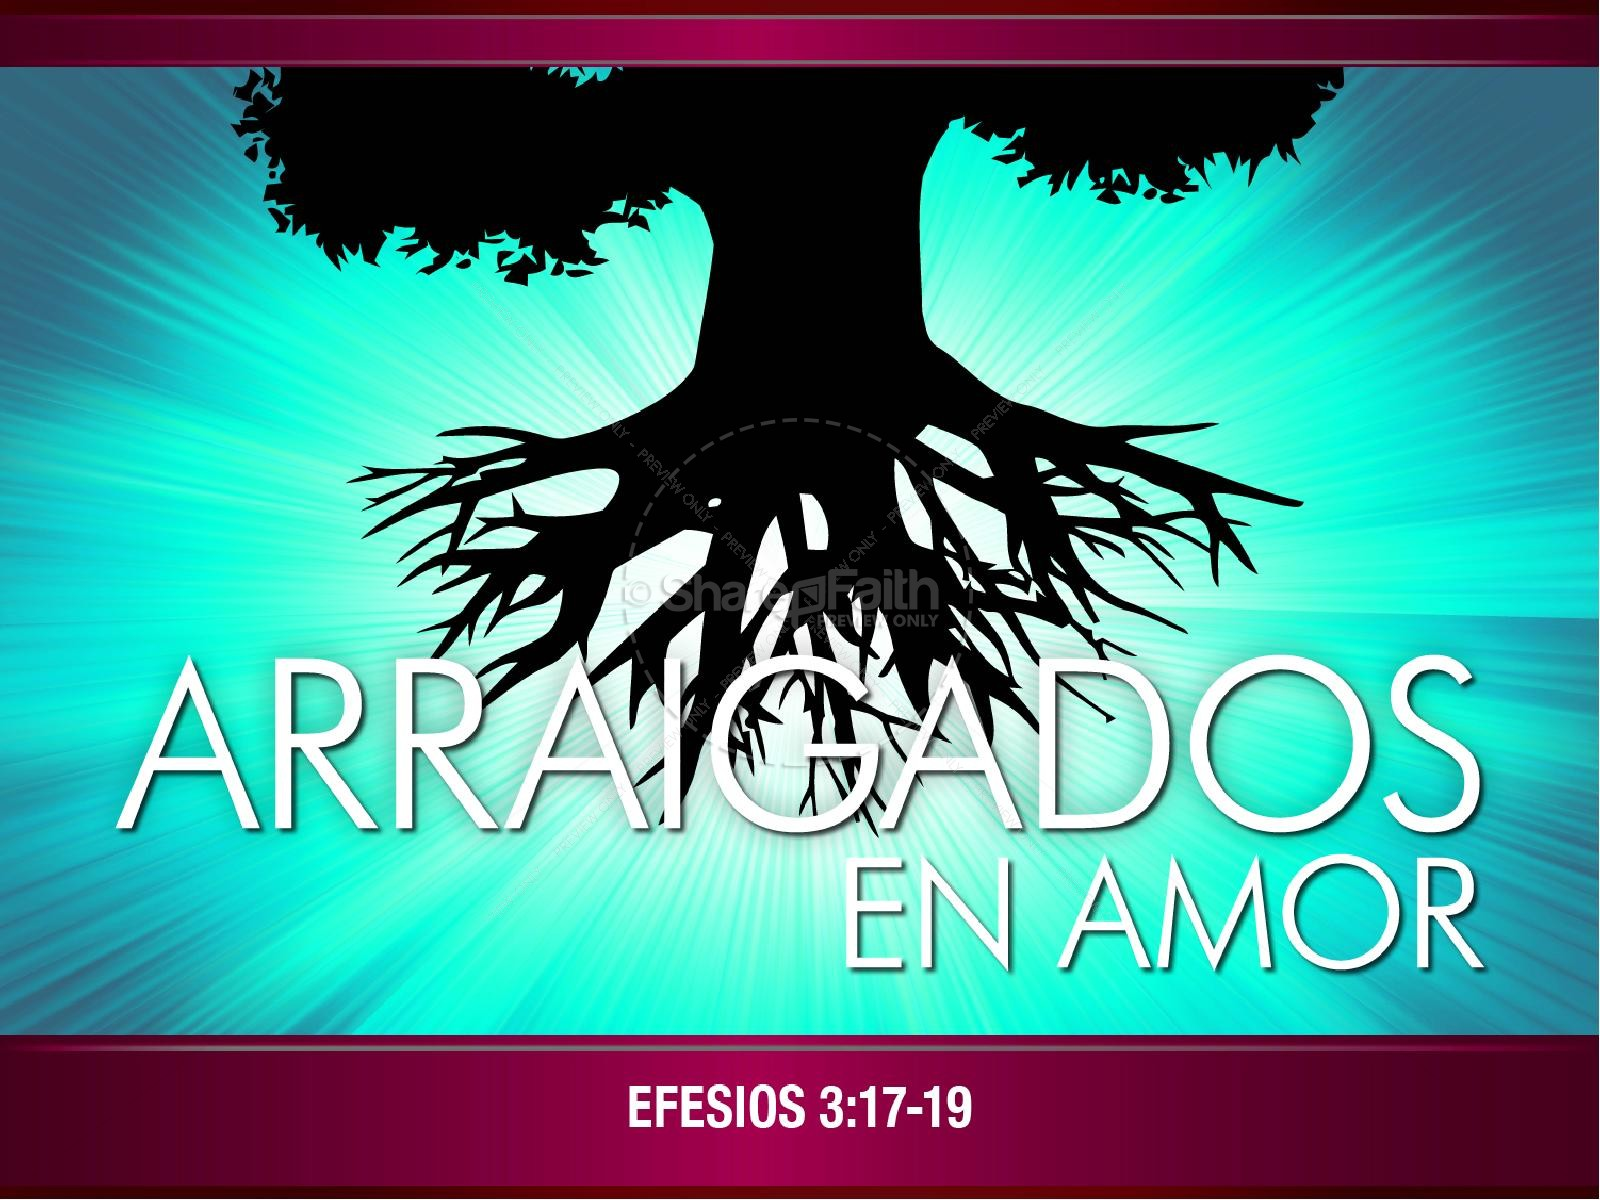 Arraigados en Amor PowerPoint | slide 1